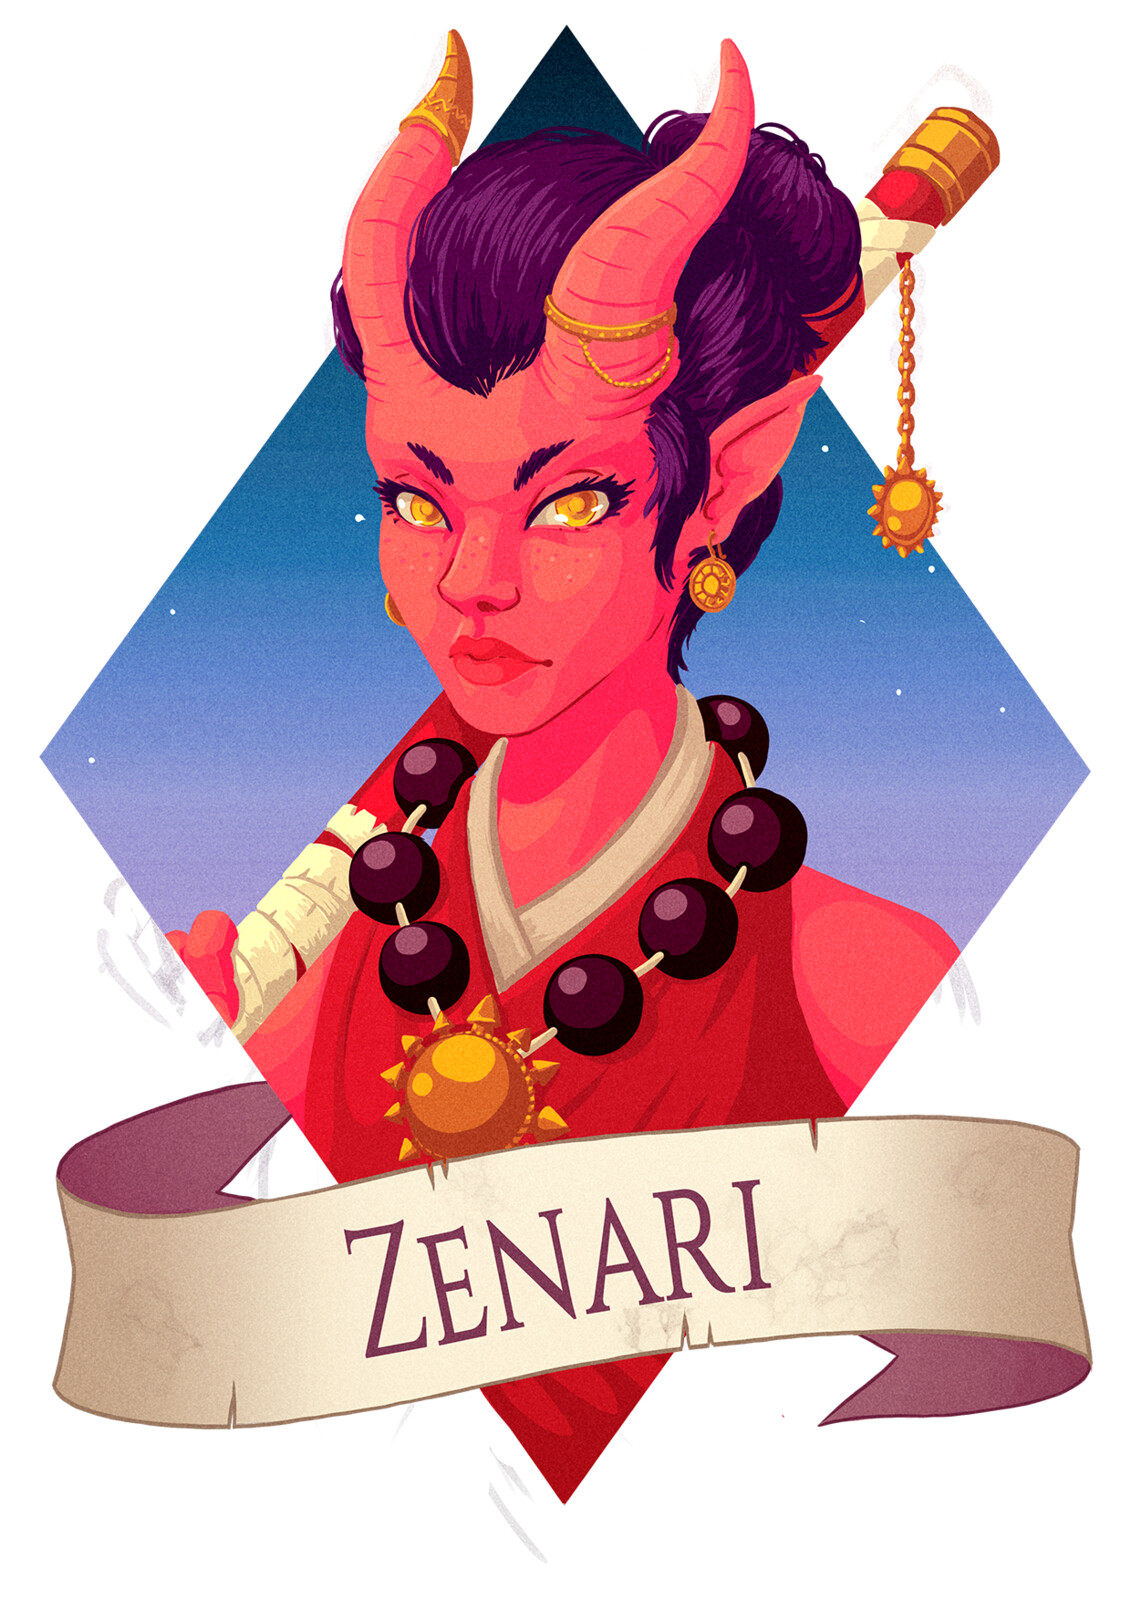 DnD Commission: Zenari